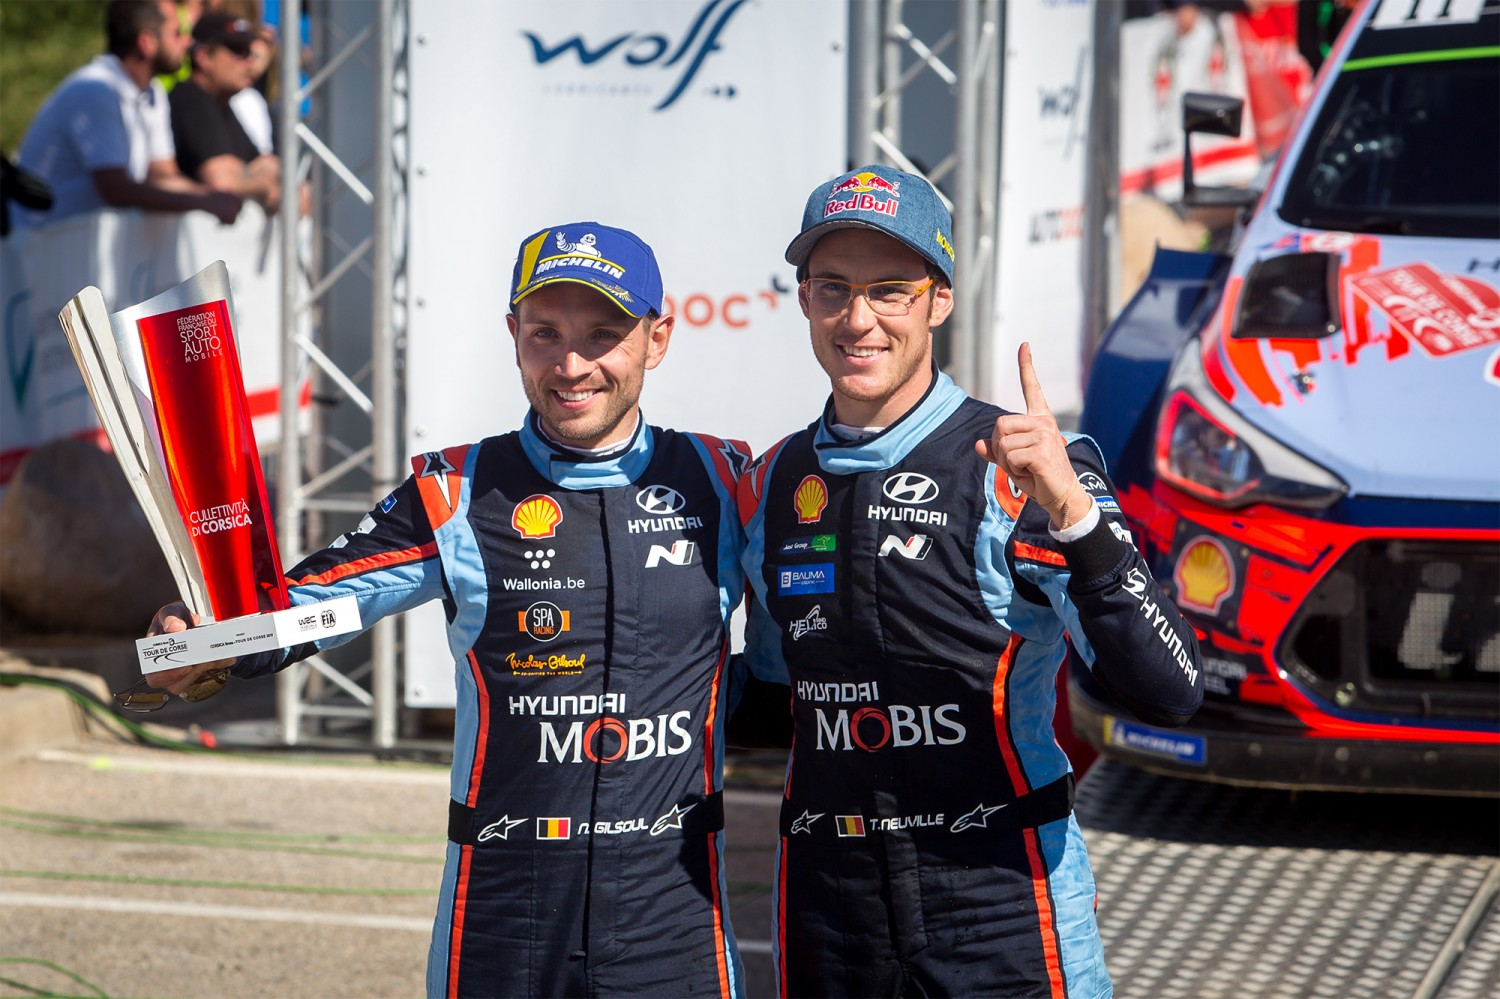 Ypres Rally Masters - Thierry Neuville met de Hyundai i20 Coupé WRC!